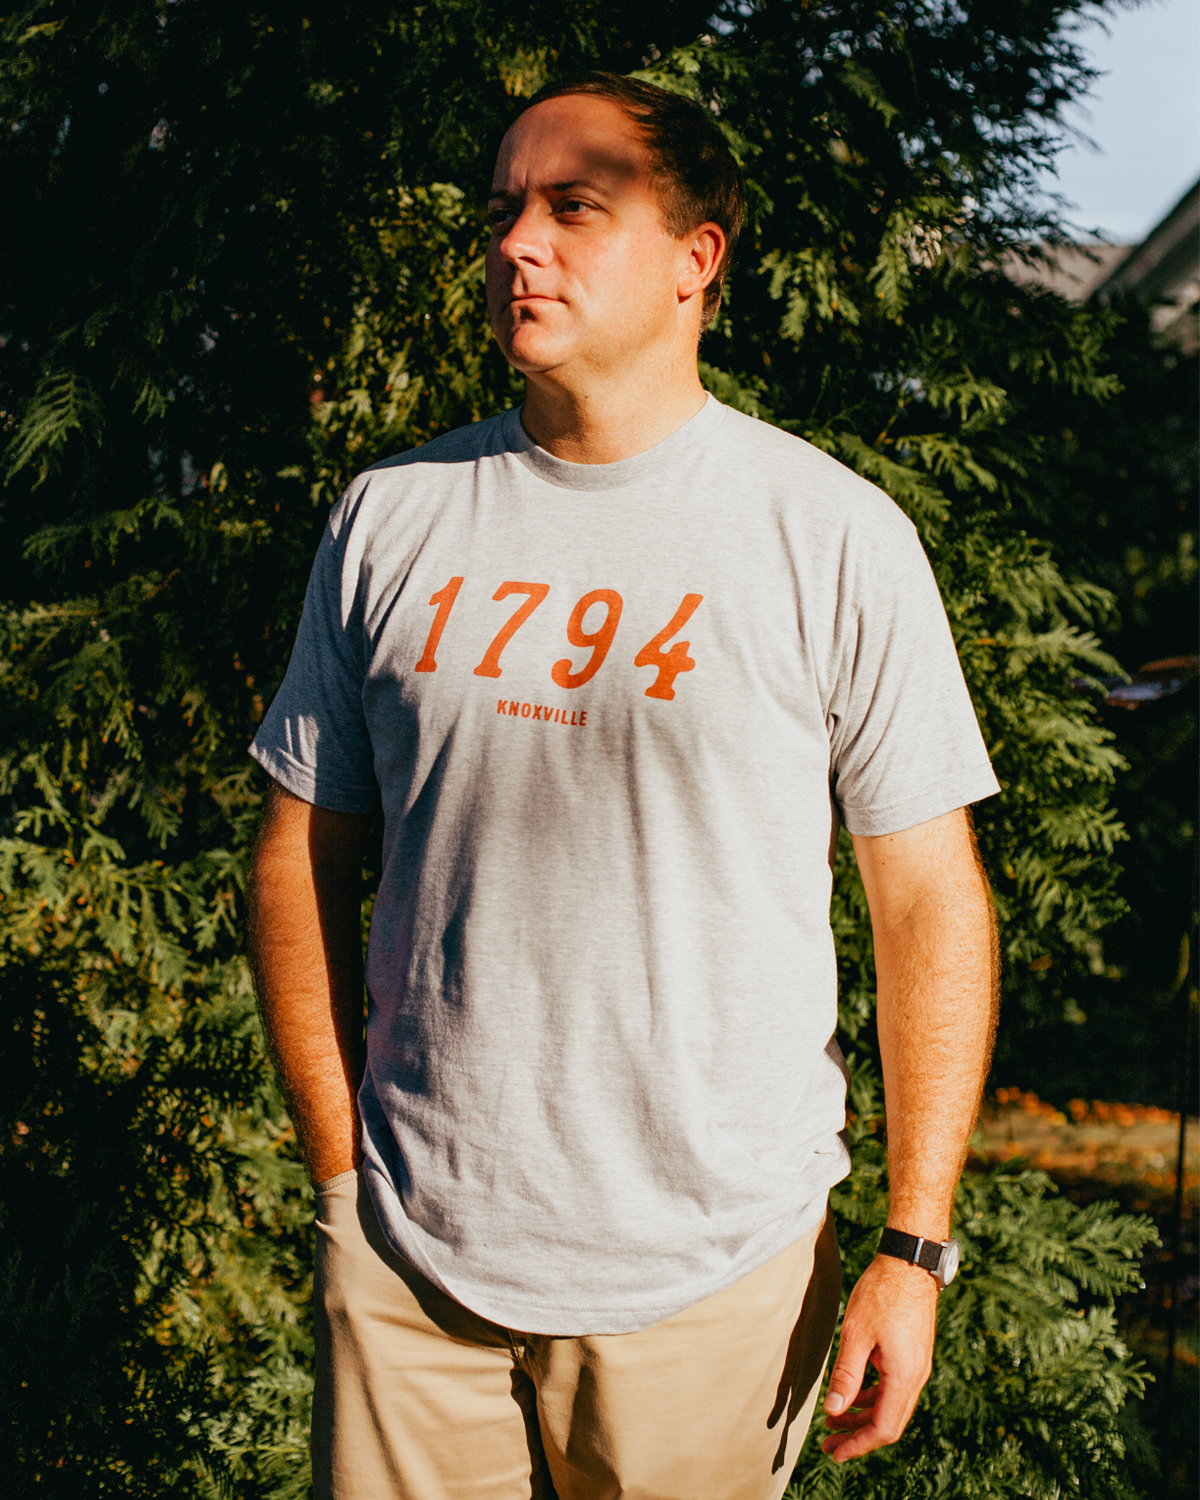 Man wearing 1794 Knoxville Tennessee shirt with khakis